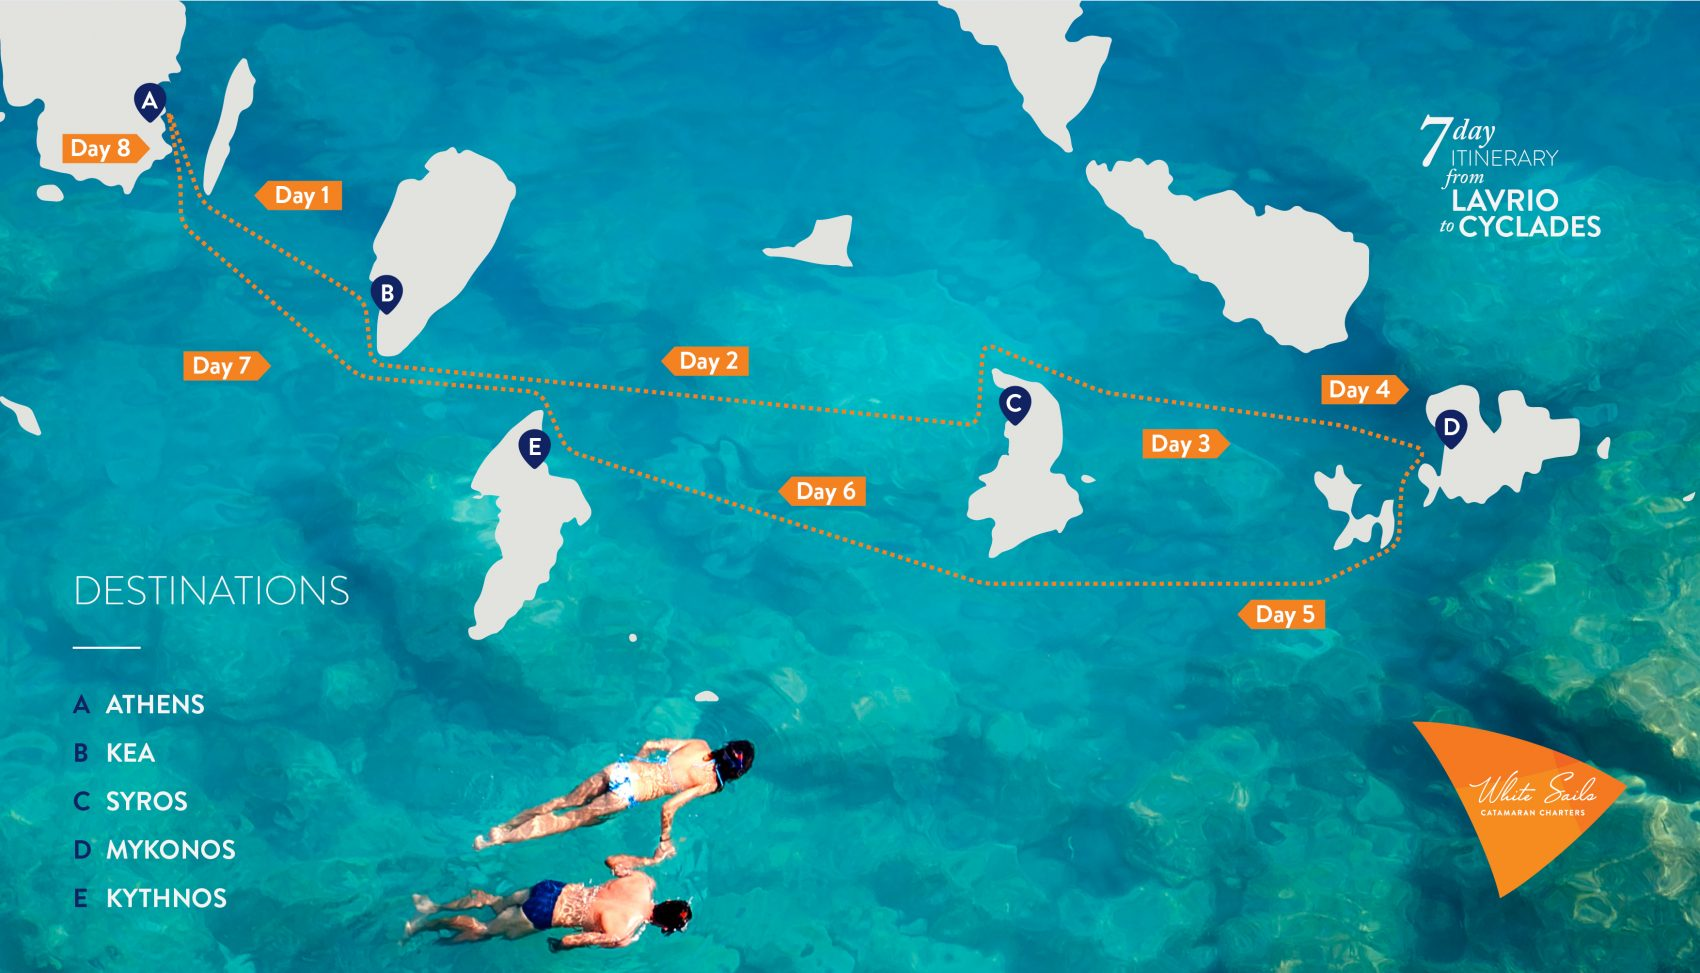 White Sails Map for Lavrio to Cyclades Itinerary